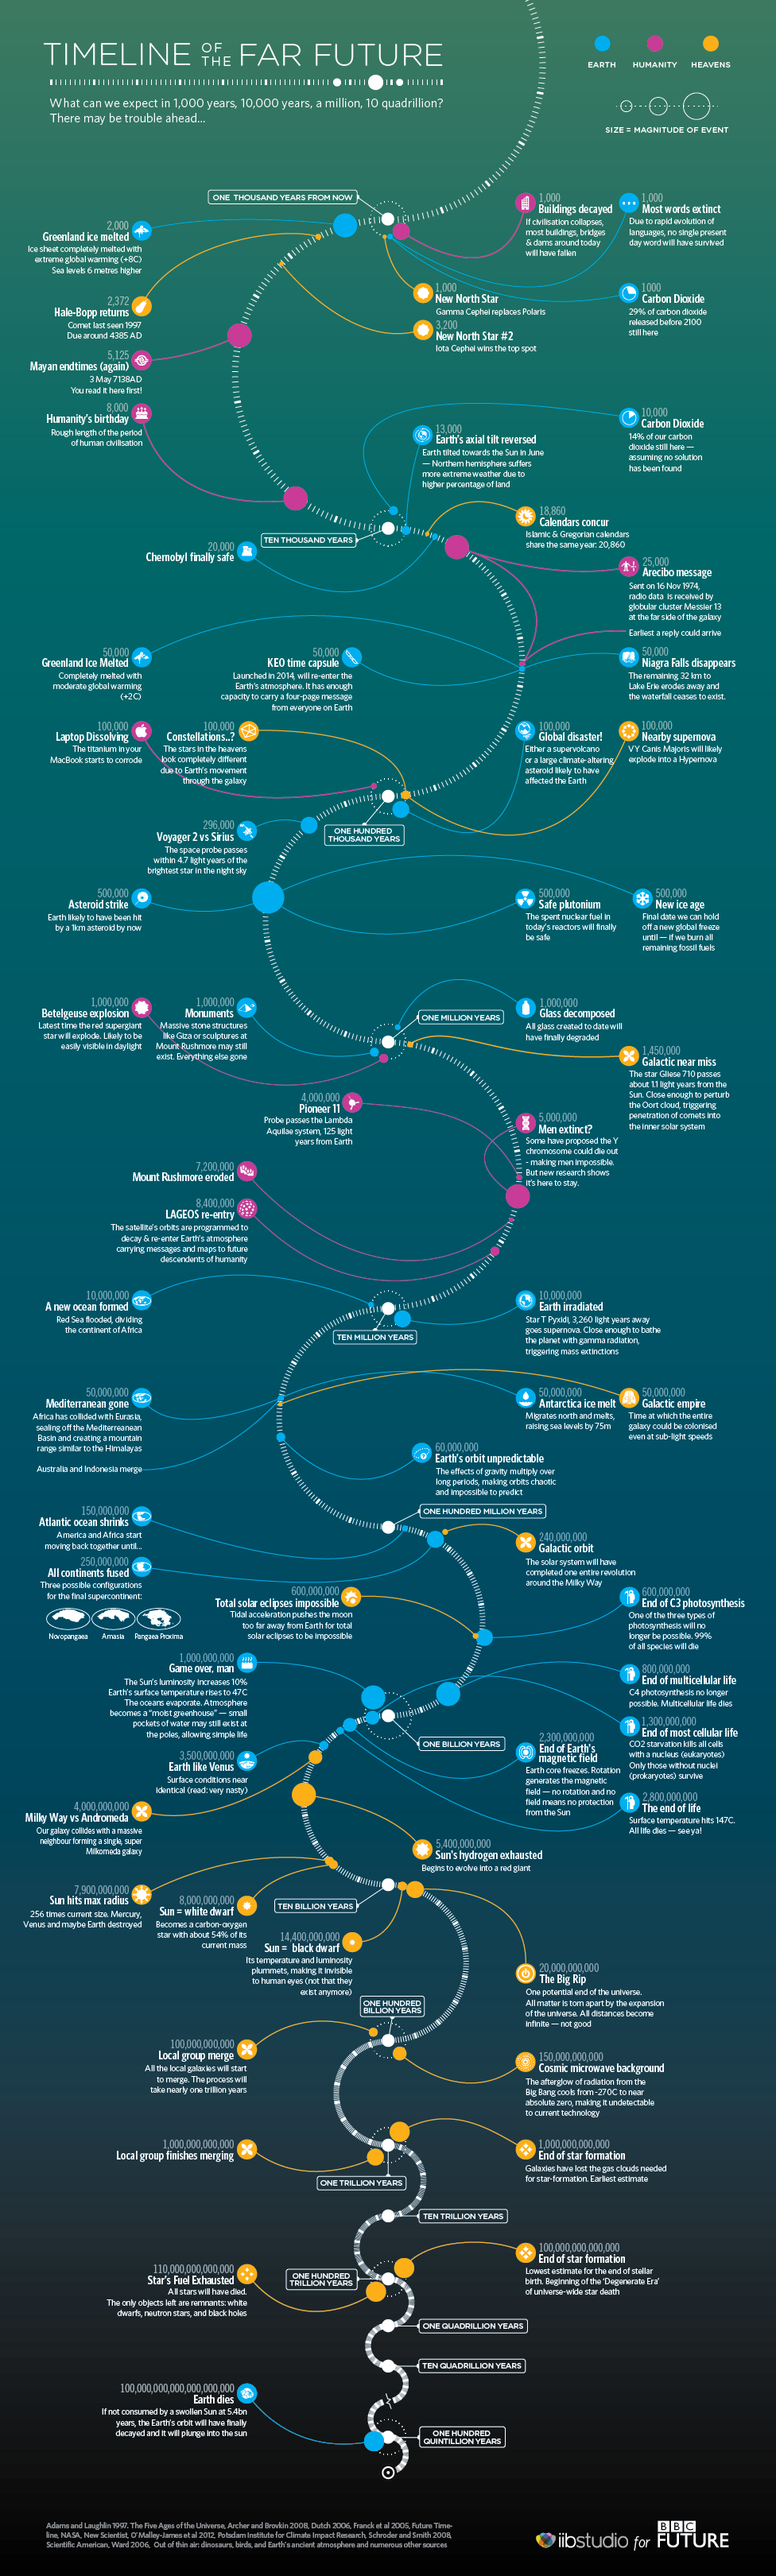 Timeline for the far future, including the death of the